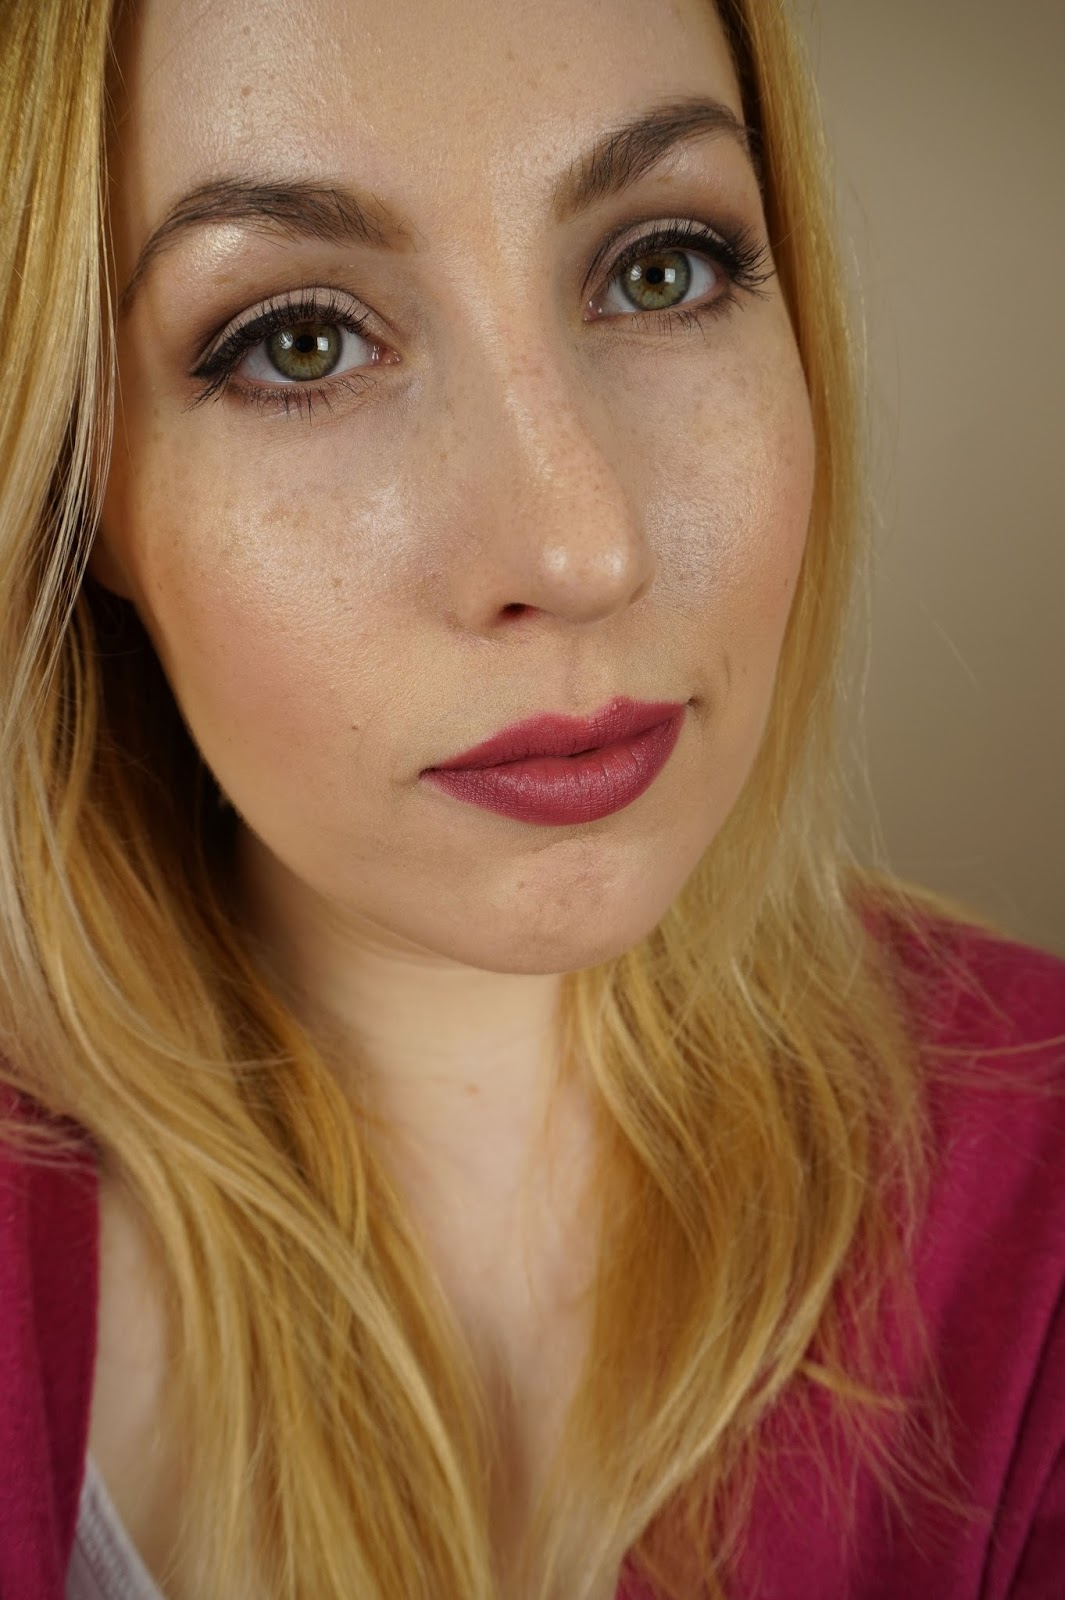 Too Faced 'Natural Eyes Palette', MAC Toledo Blush 'Kindergarten Red', and Becca Shimmer Skin Perfector Pressed 'Champagne Pop'